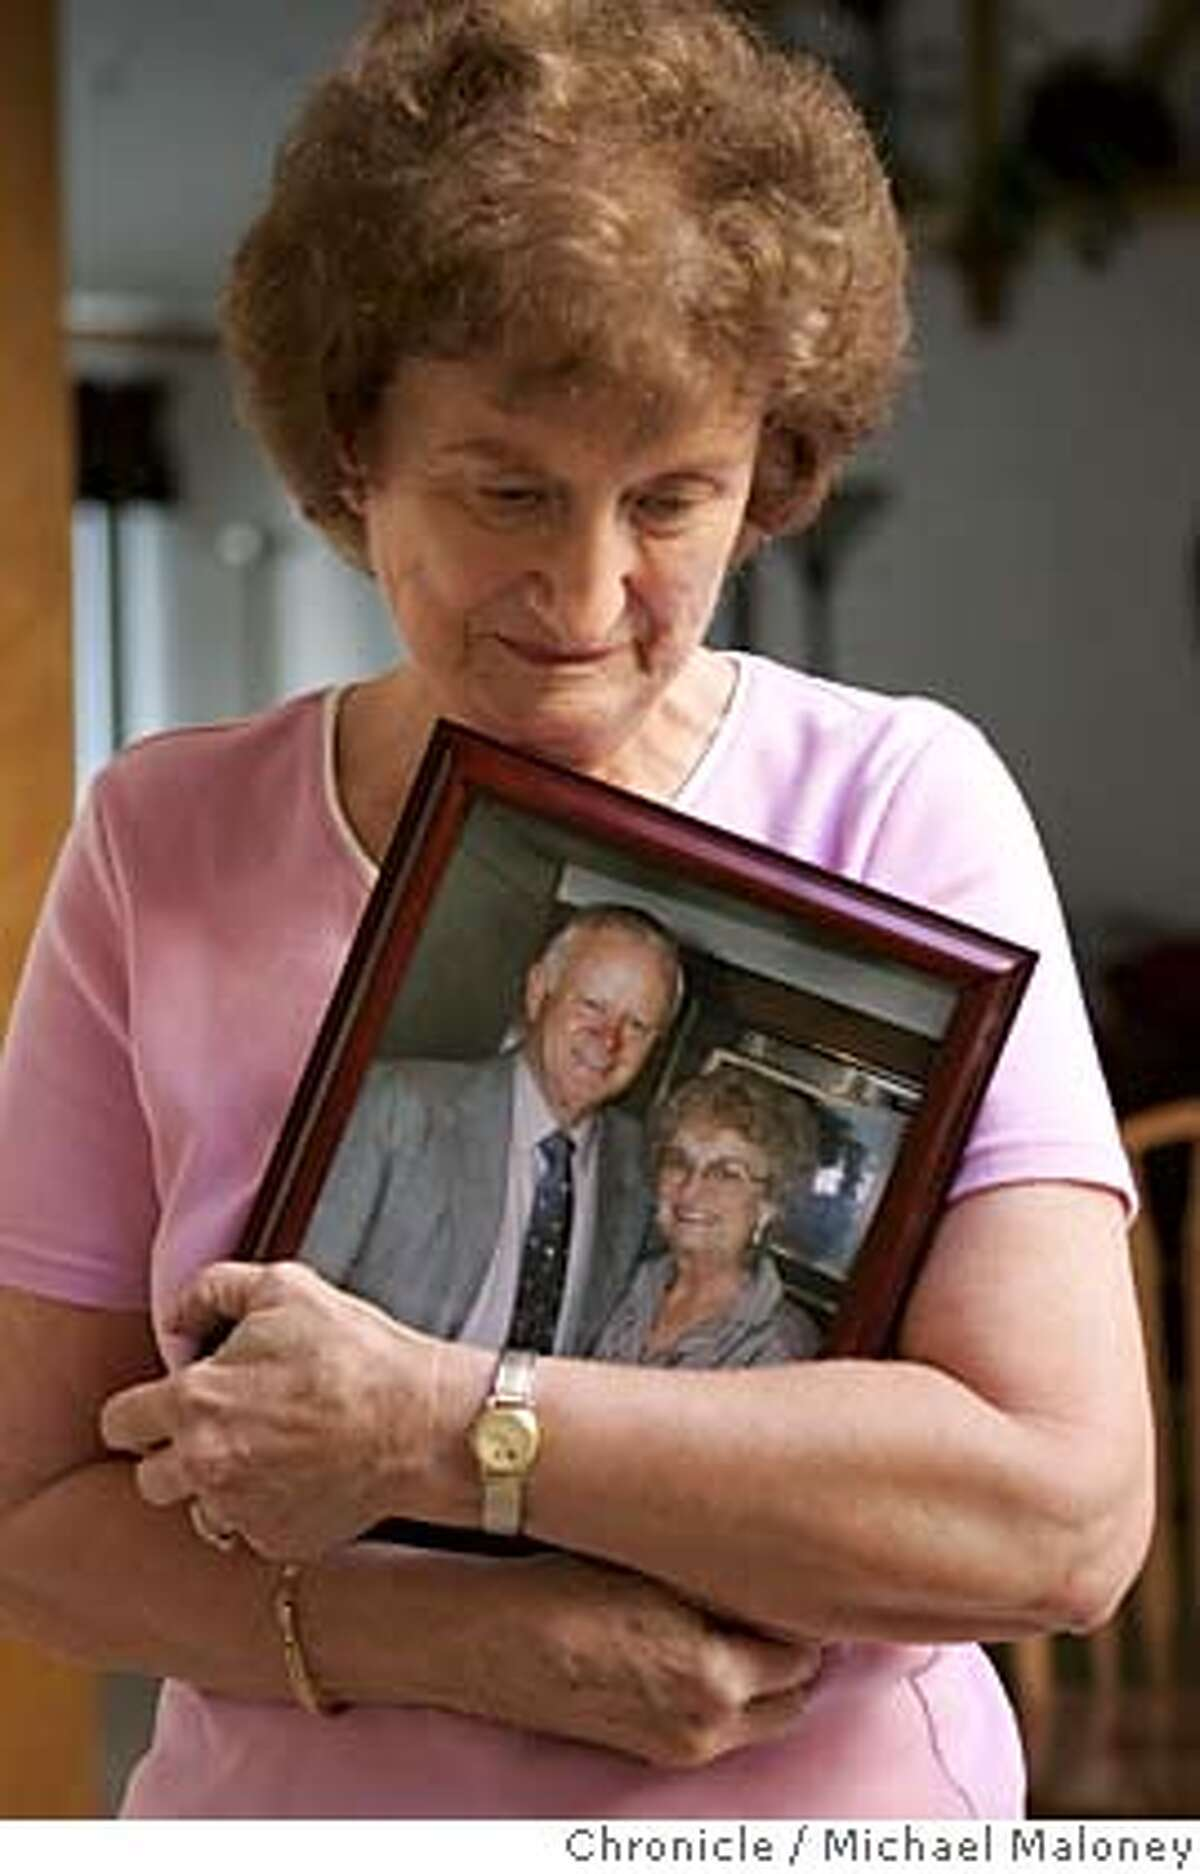 NEVIUS02_023_MJM.jpg Joyce Brooks of Livermore holds on to a portrait of her and her deceased husband Carl Brooks. Carl was a machinist at Lawrence Livermore Lab and was exposed to beryllium during his work. He died in January 2000 of beryllium disease, a form of lung cancer. Former Livermore lab workers and surviving spouses of those who died talk about the anguishing process of getting the federal government to acknowledge their claims that handling nuclear materials decades ago made them sick. Four years after a federal law allowed workers to file claims, many of them have not received a cent. Joyce Brooks, is one of the lucky ones. Photo by Michael Maloney / San Francisco Chronicle MANDATORY CREDIT FOR PHOTOG AND SF CHRONICLE/ -MAGS OUT